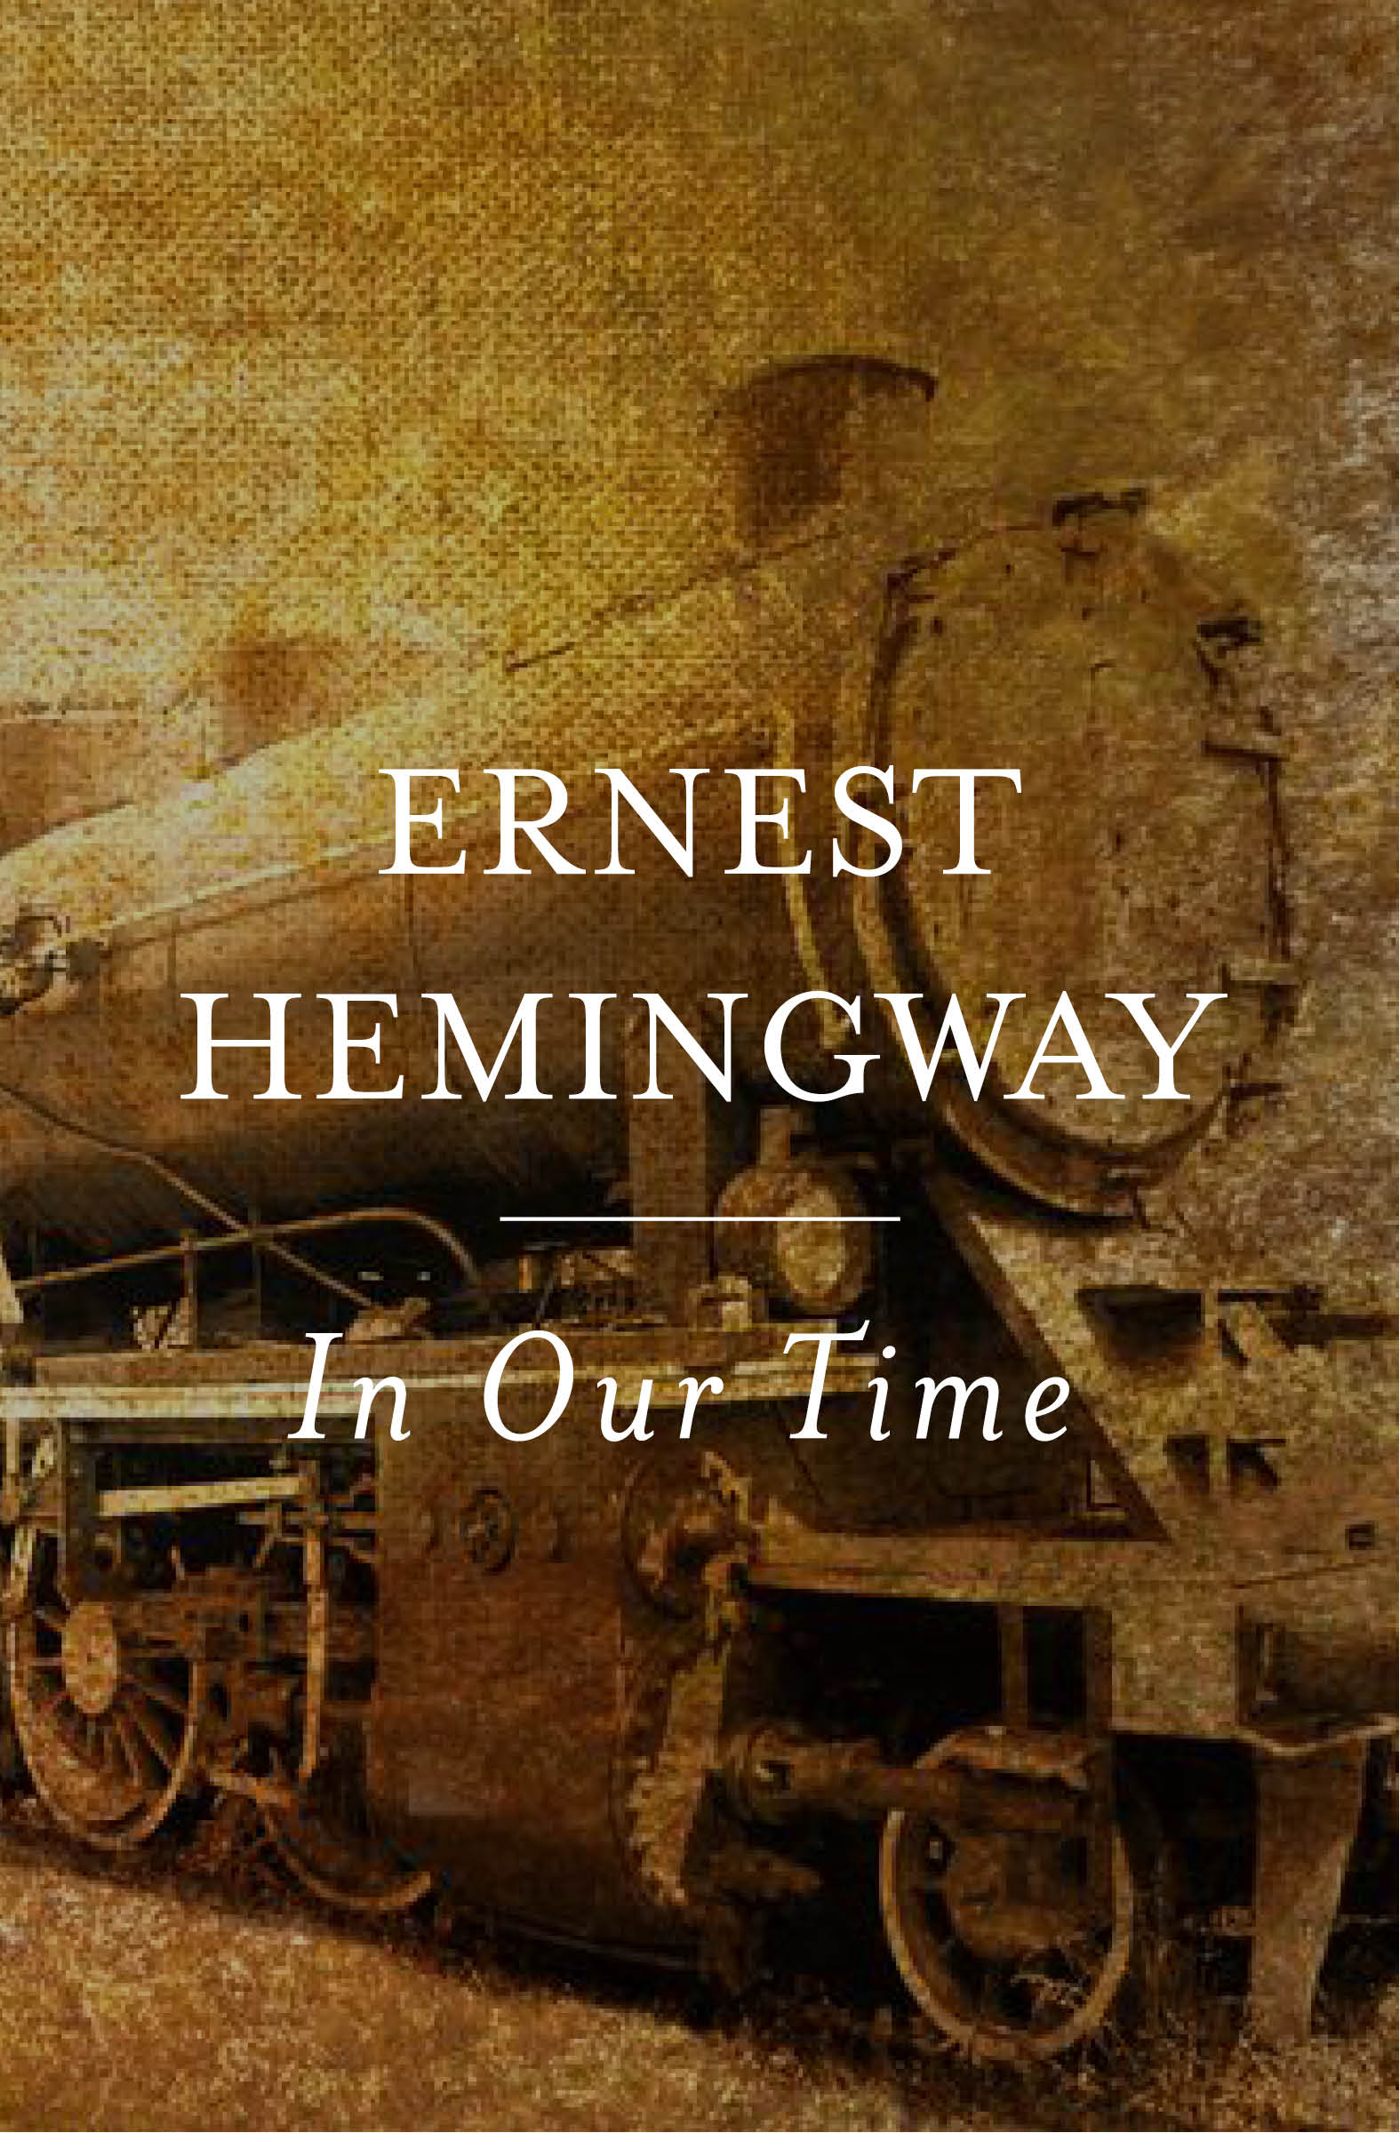 a literary analysis of the collection in our time by ernest hemingway Editorial reviews amazoncom review no writer has been more efficiently  overshadowed by  i bought a collection of short stories (this is my time) that  made reference to hemingway's in our  i also found an online site called  sparknotes.